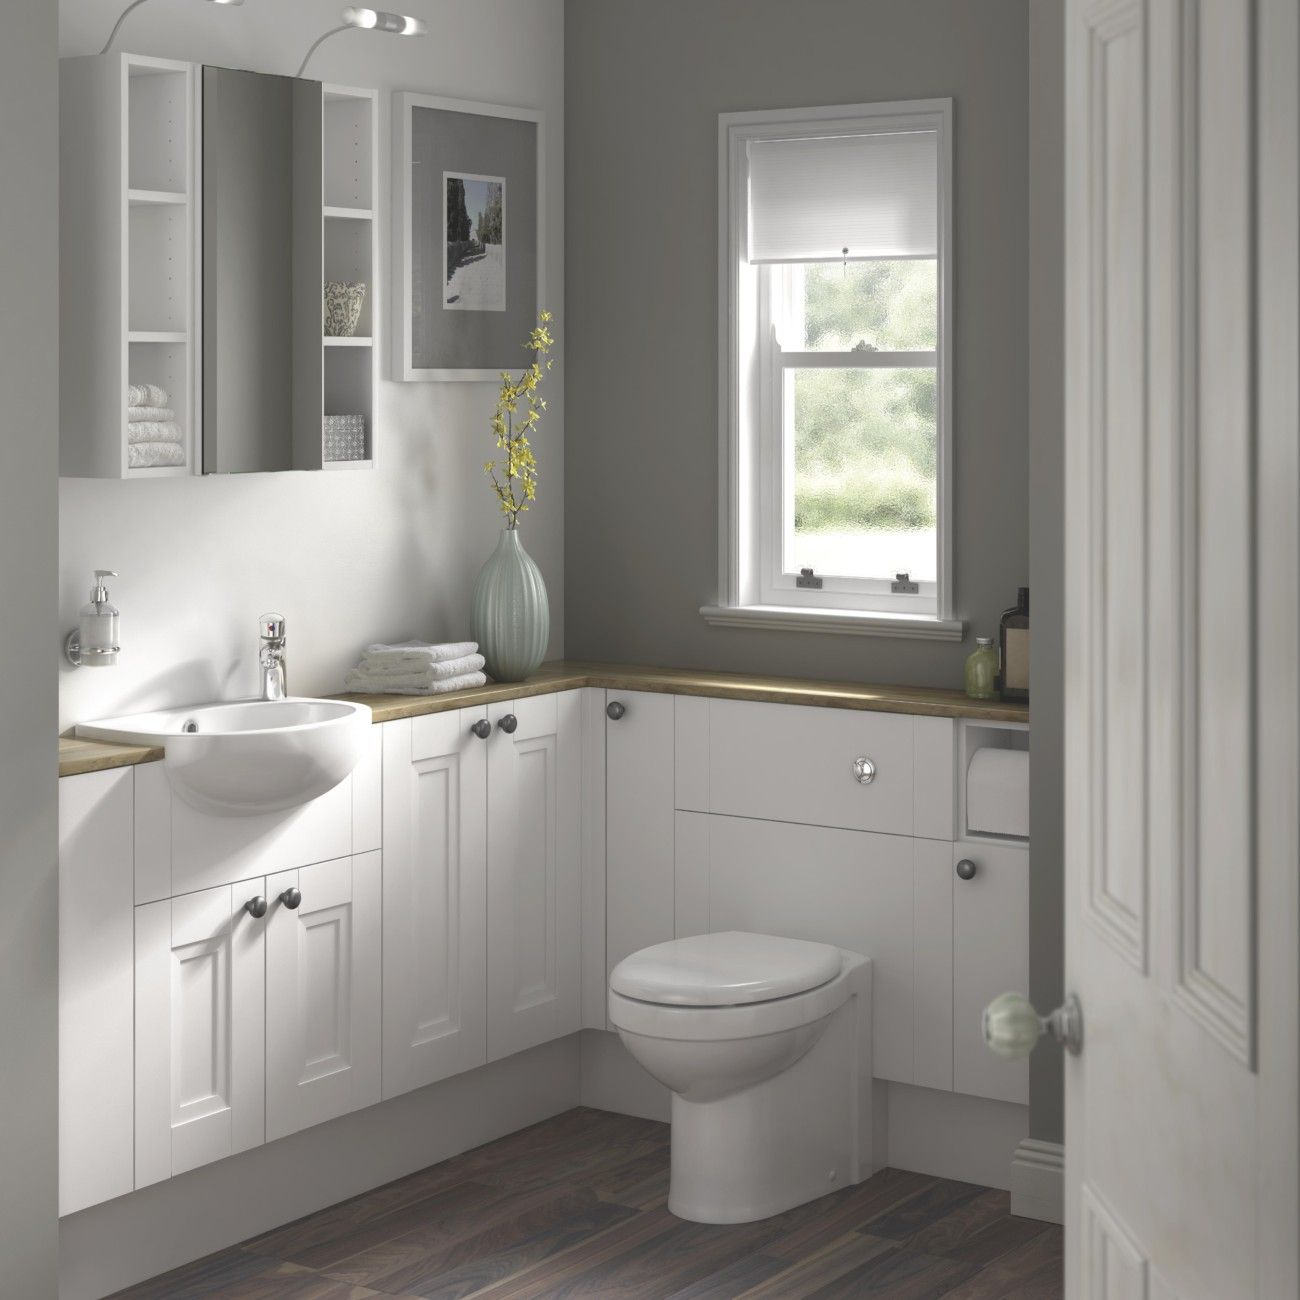 Powder Room Contemporary Cantilevered Sink Decorative Ideas With ...